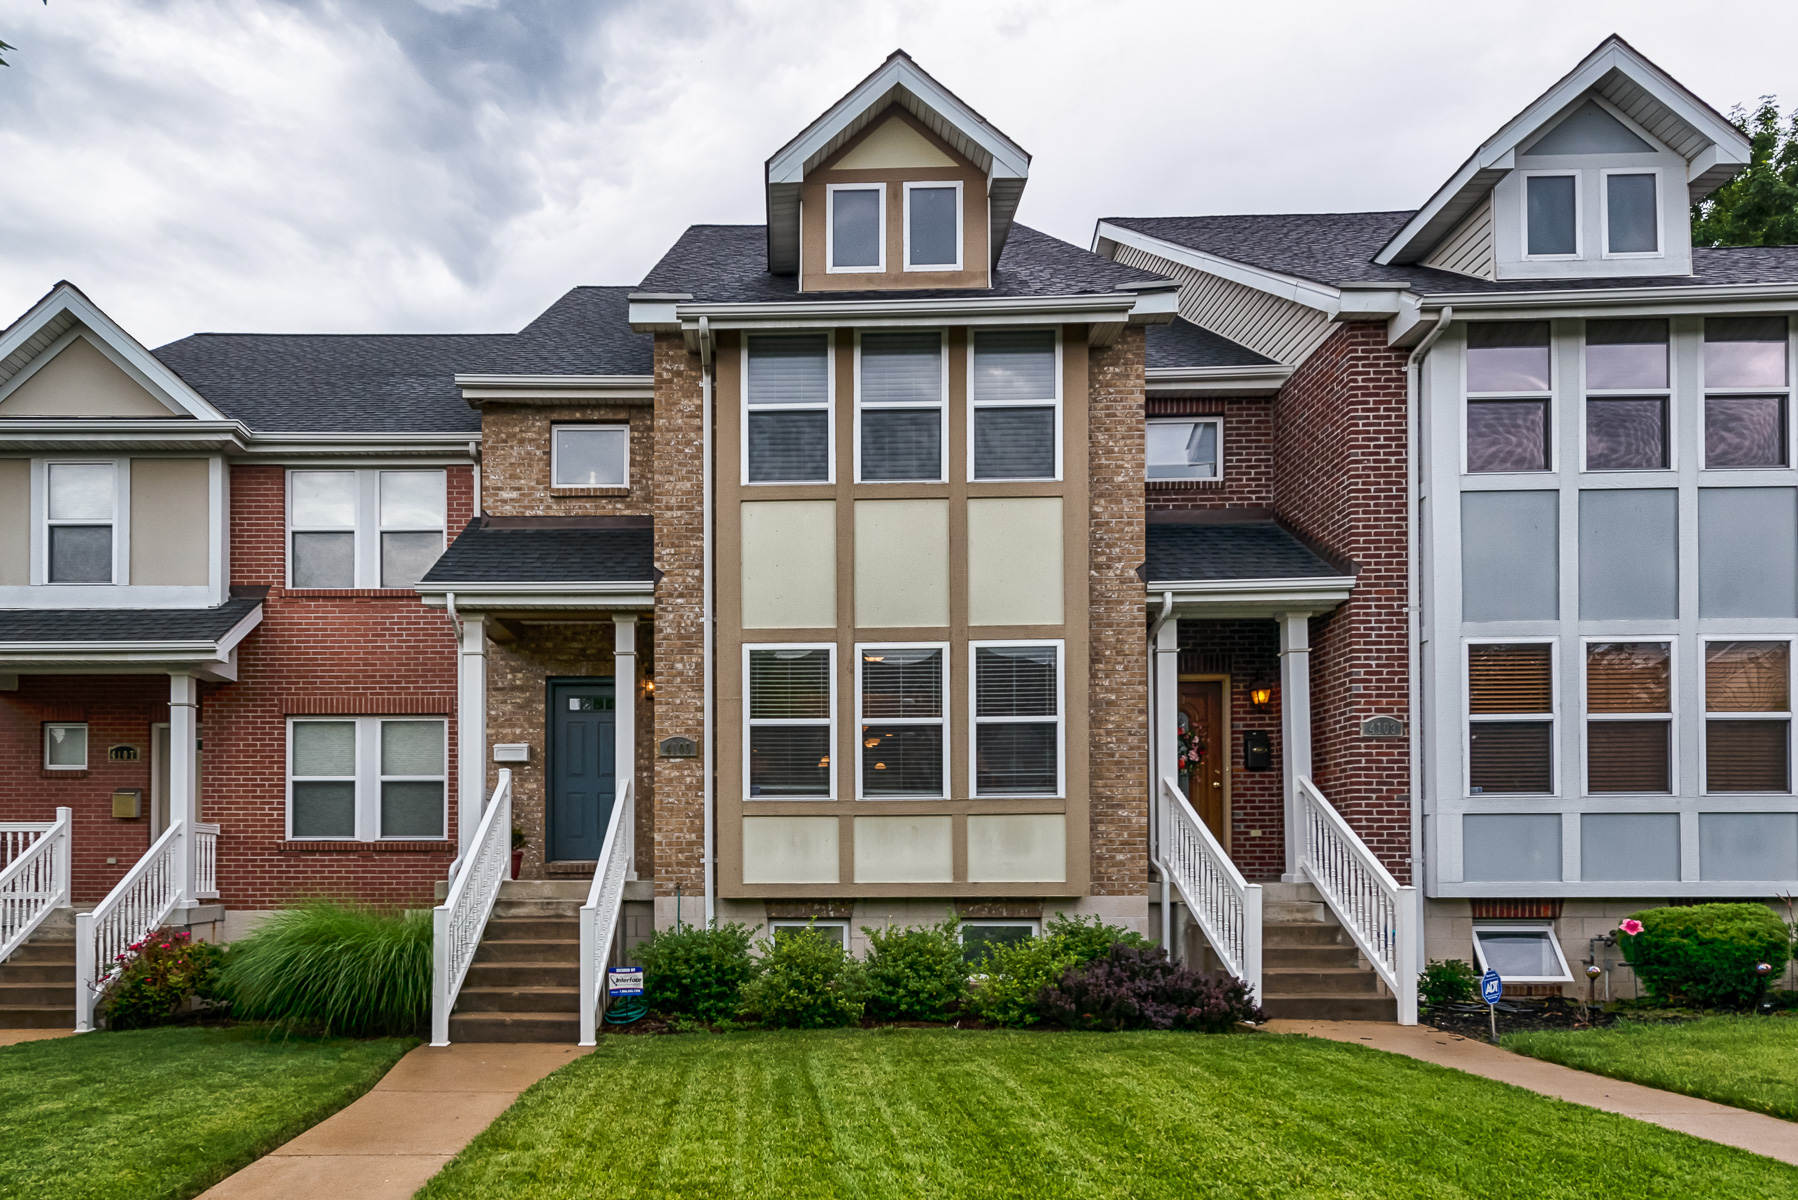 Single Family Home for Sale at The Ease of Gaslight Living 4105 Olive Street St. Louis, Missouri 63108 United States